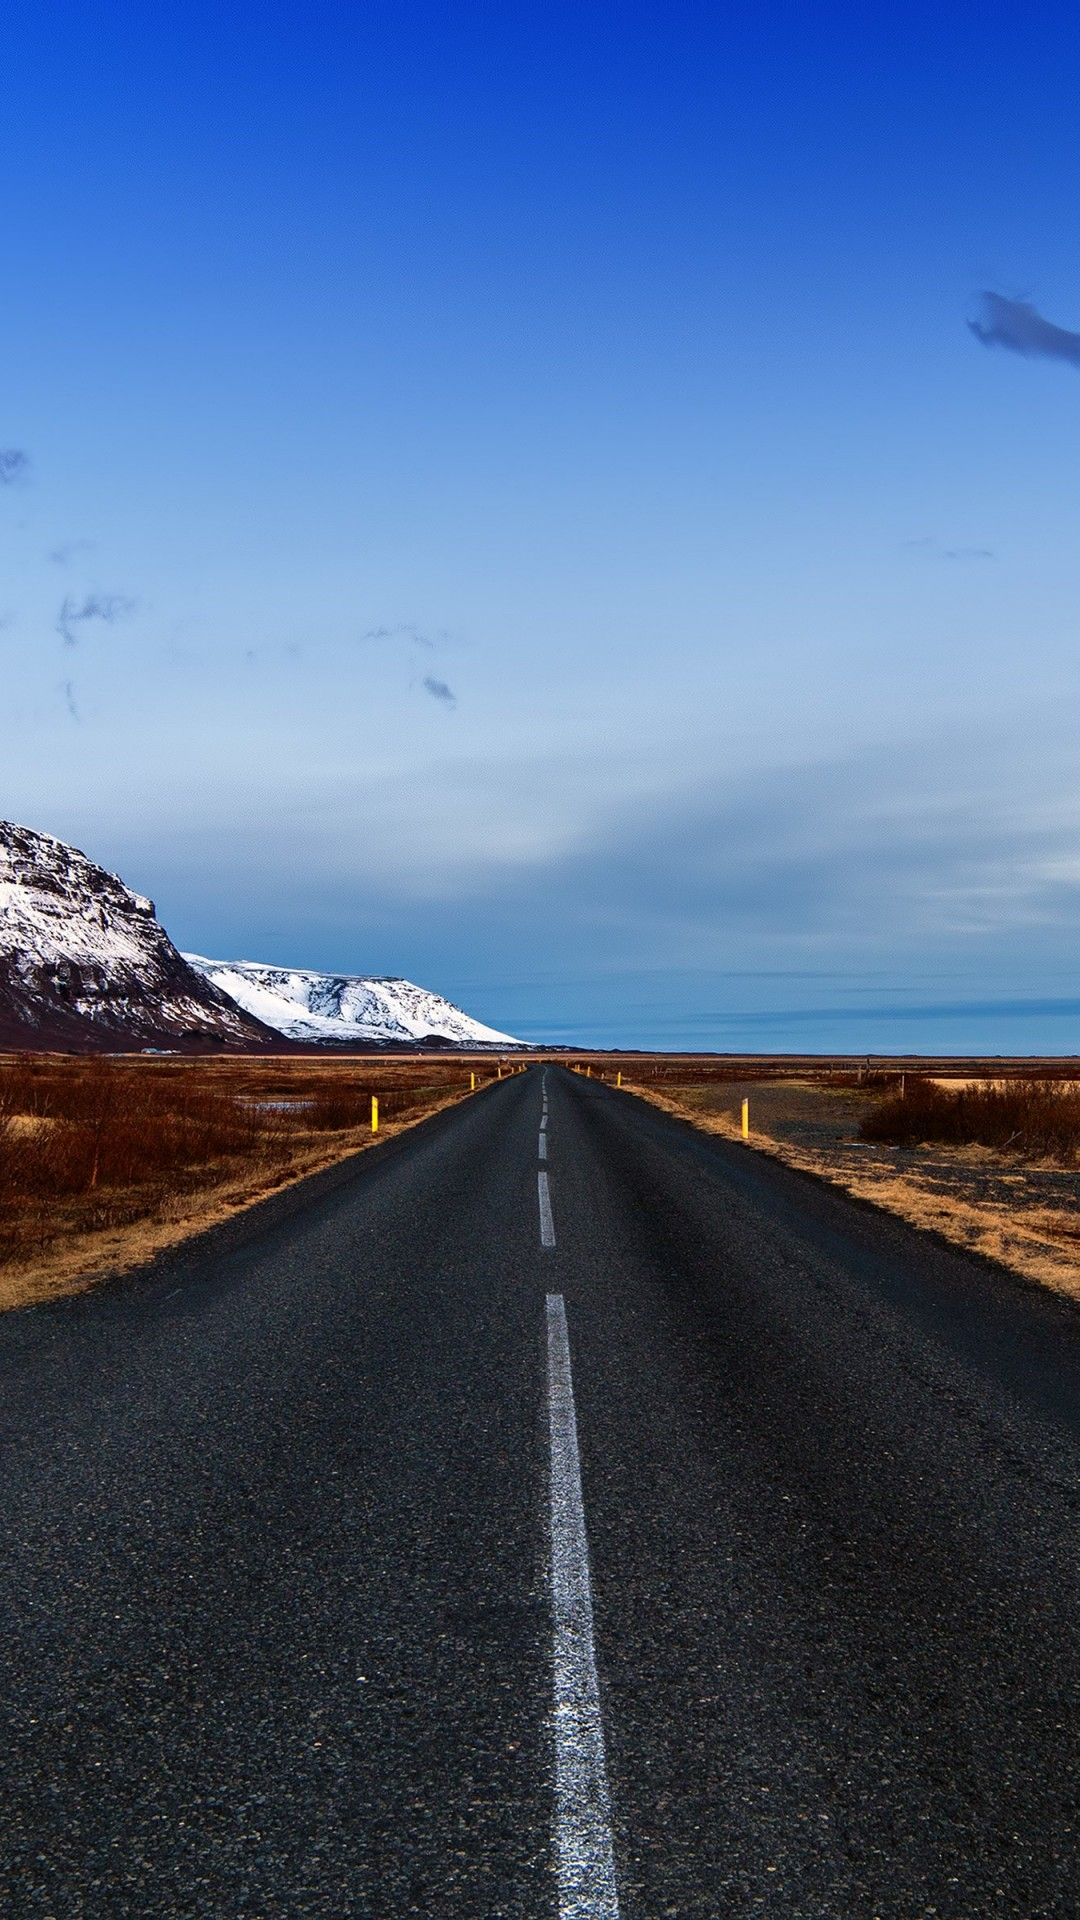 Icelandic Road, Skaftafell, Iceland Wallpaper for SONY Xperia Z3